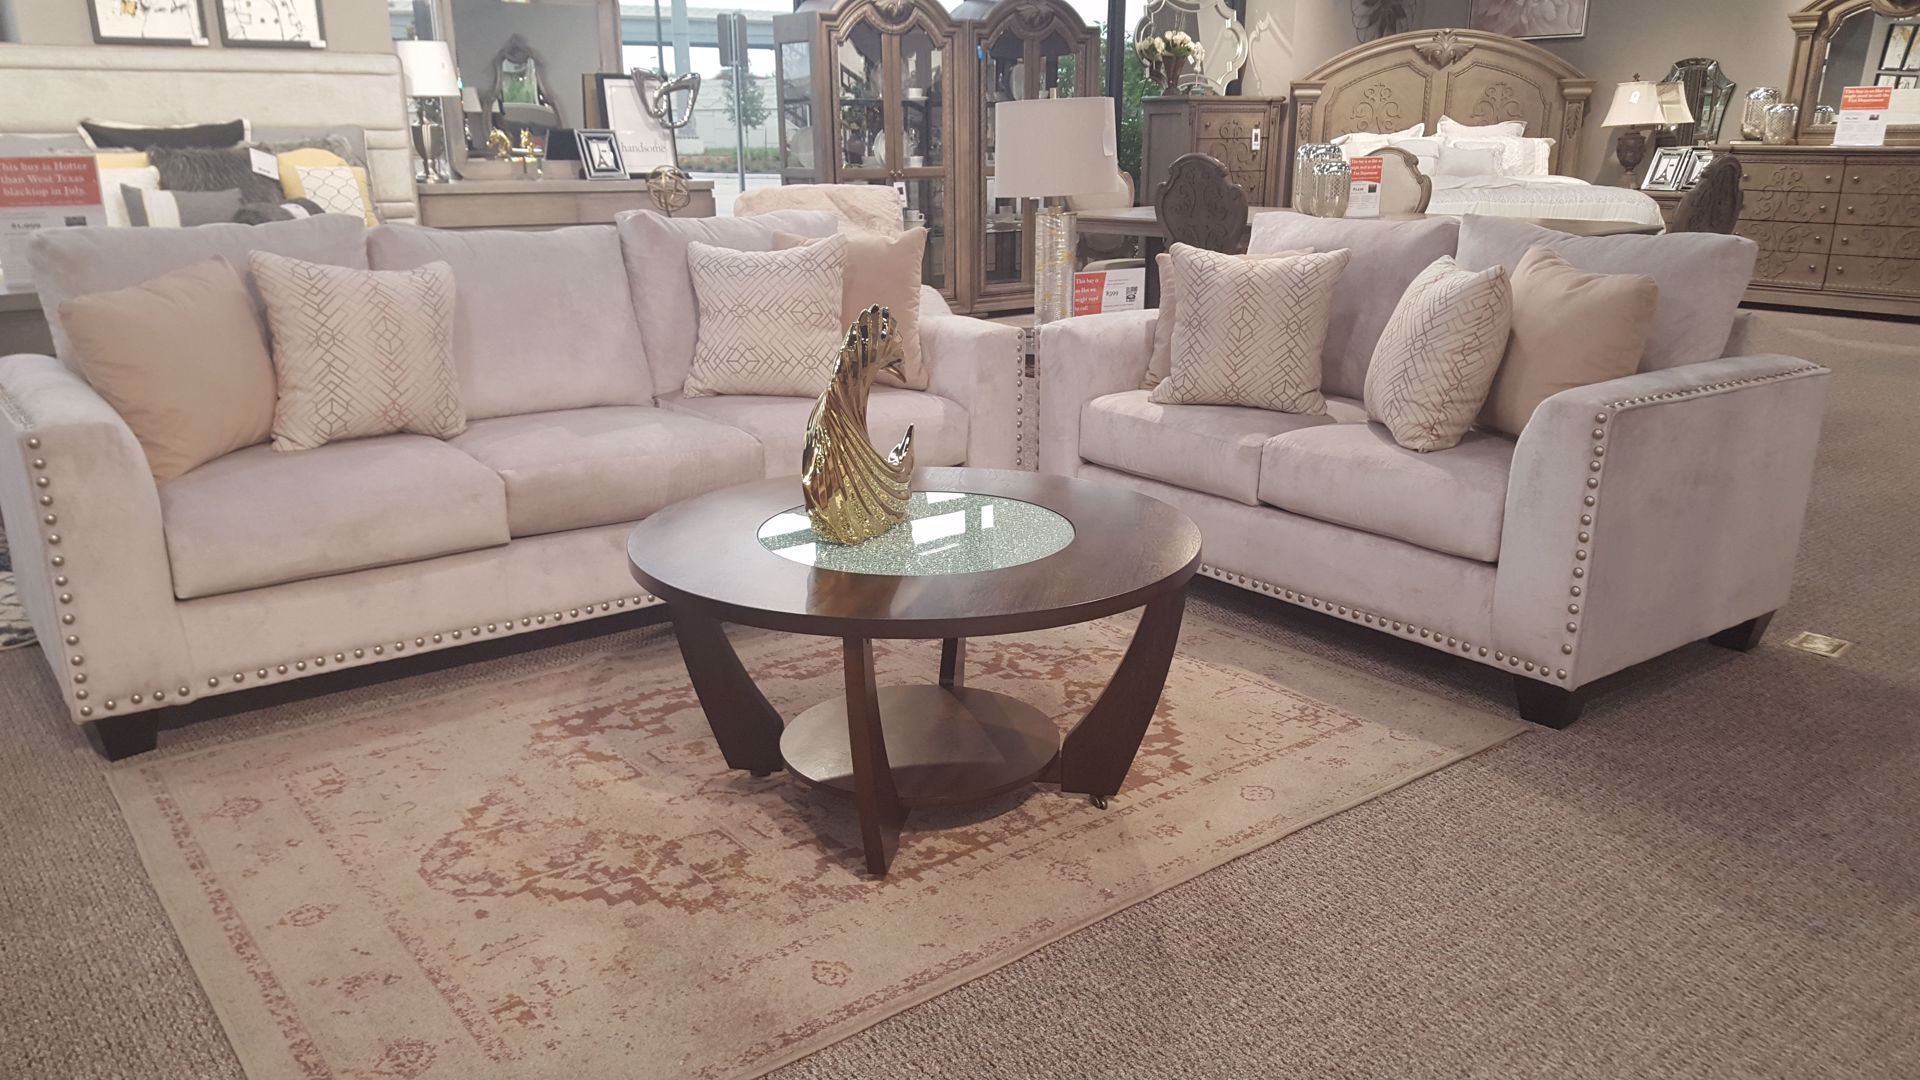 Fawn Brindle Living Room Furniture Houston Exclusive Furniture within Living Room Sets Houston